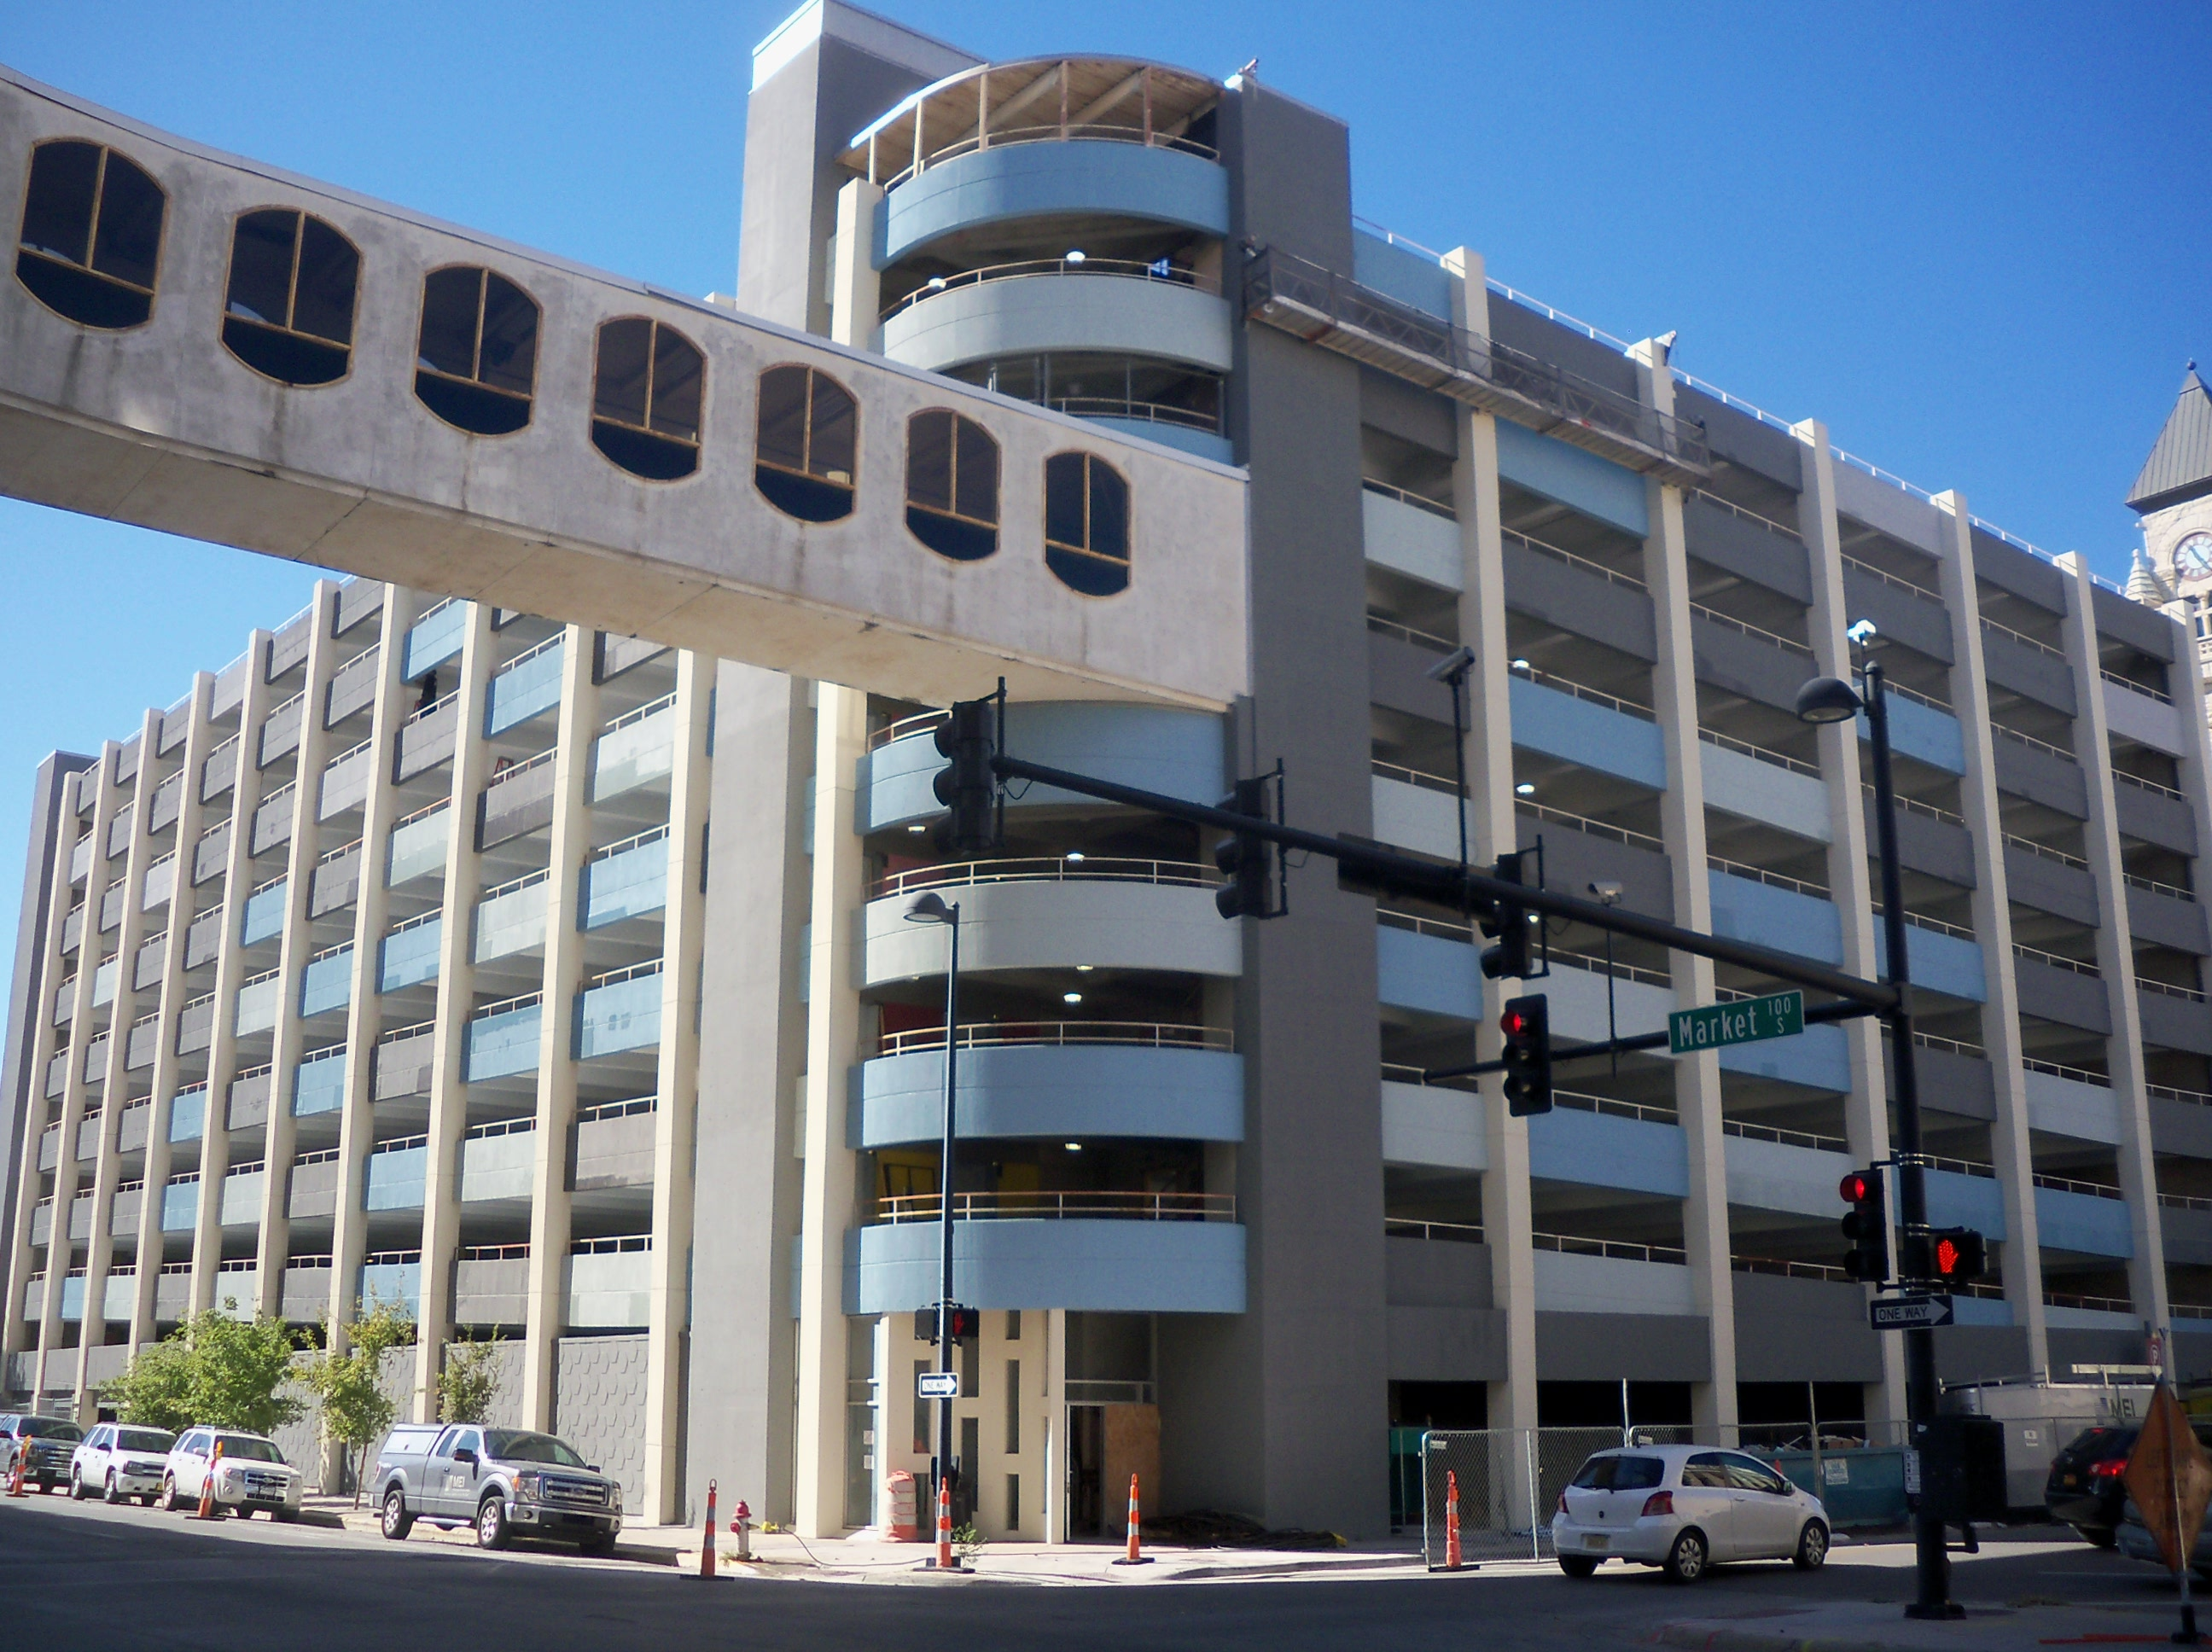 Wichita KS - Market Street Parking Garage